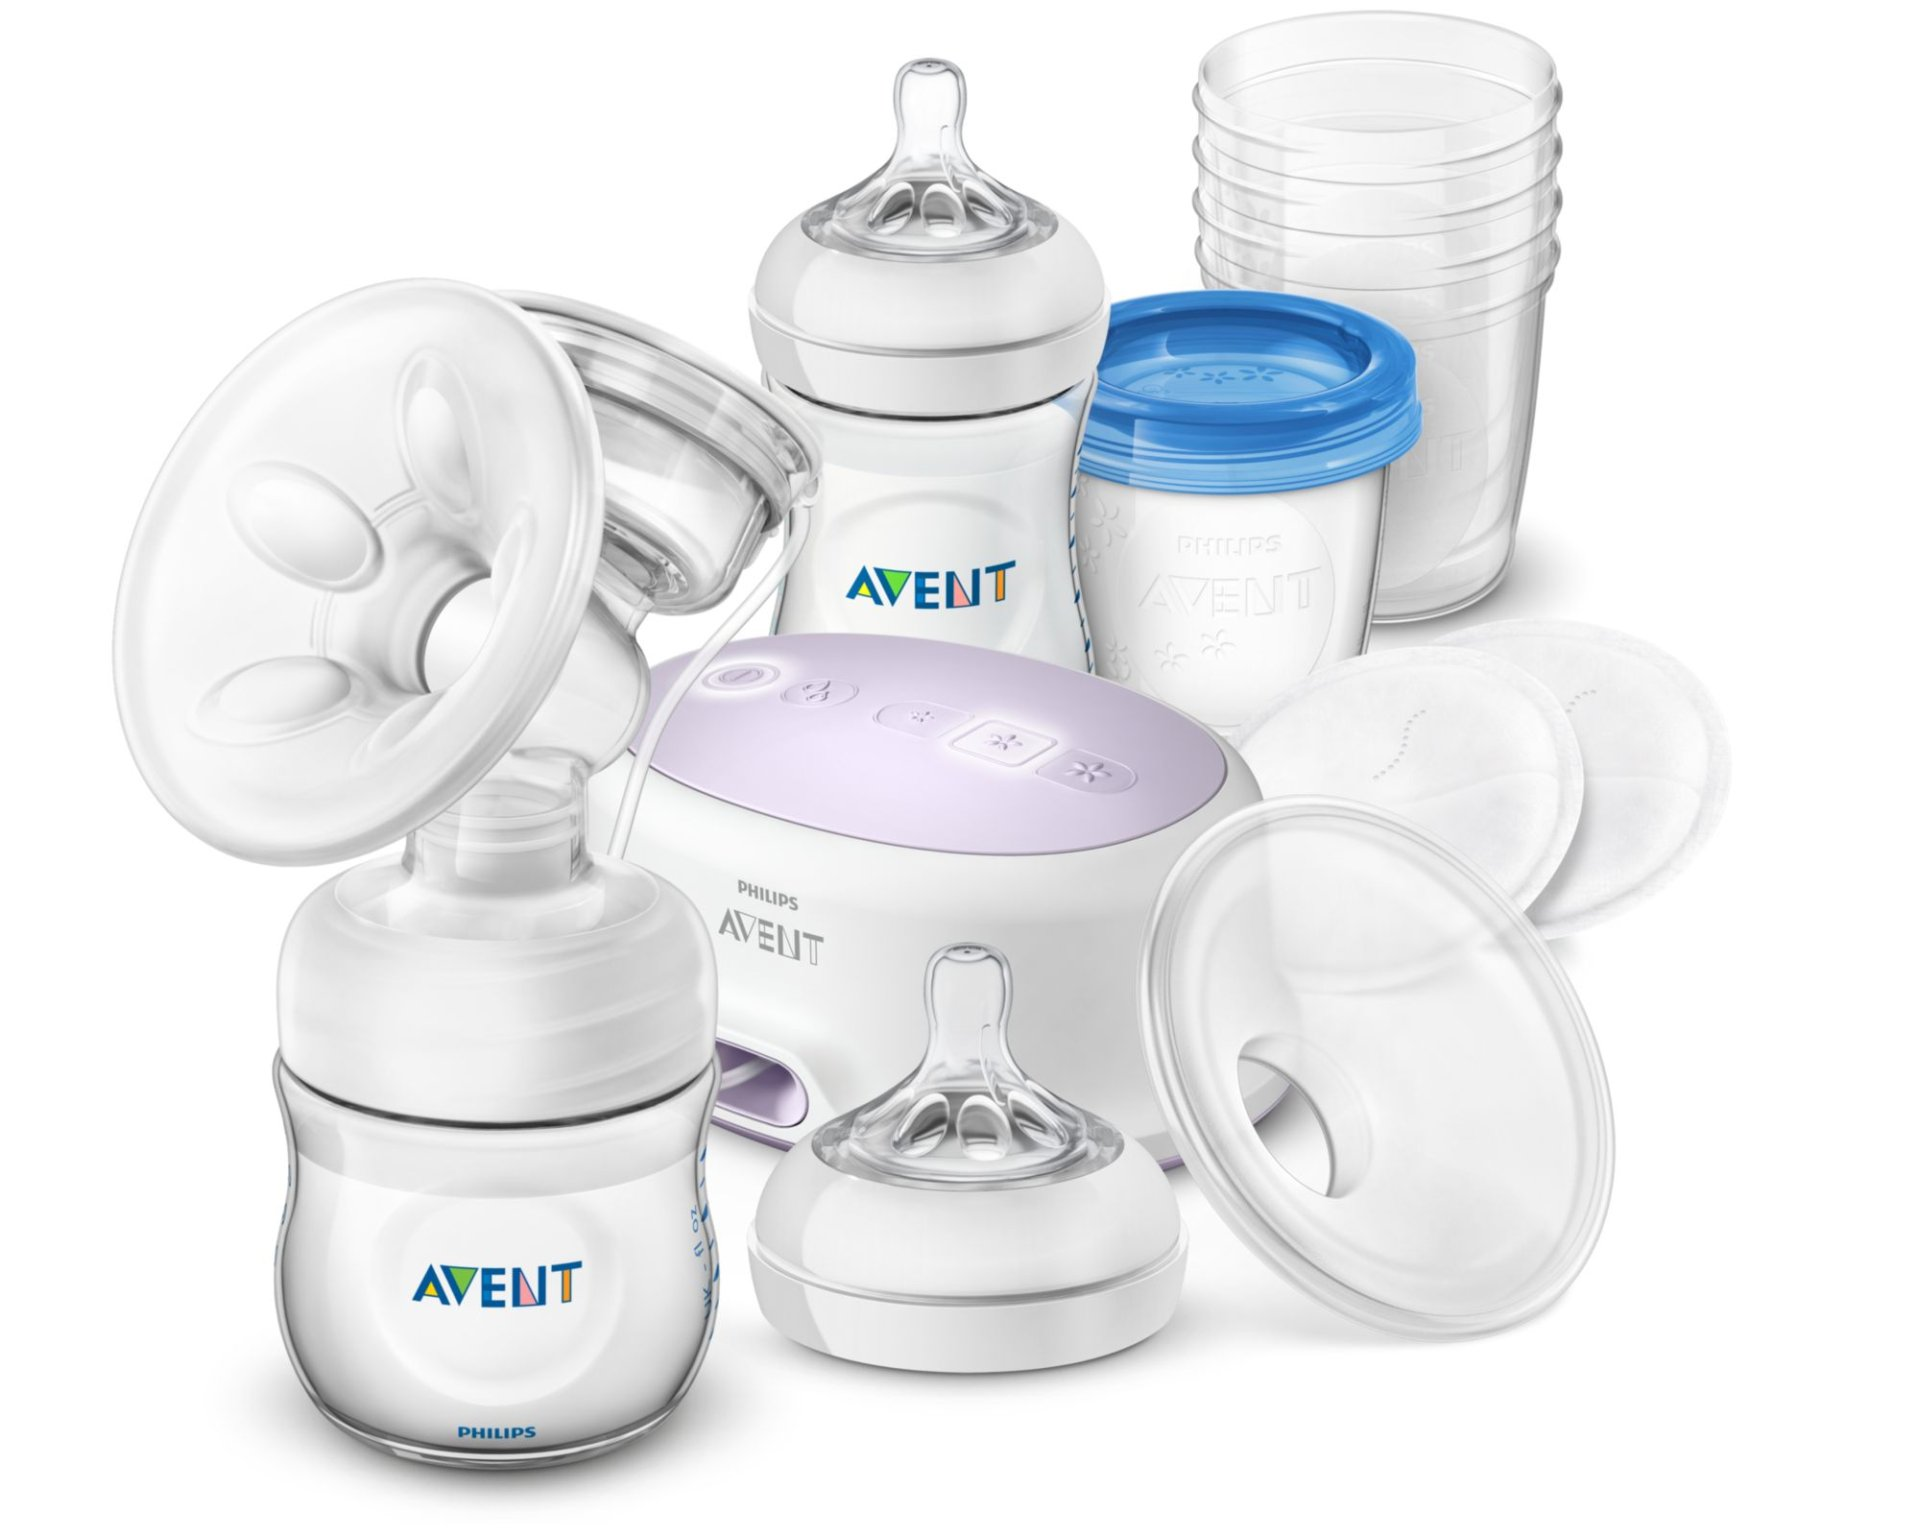 225c9341fb8 Avent Philips Natural Breastfeeding Set with Electric Breast Pump - large  image 1 ...